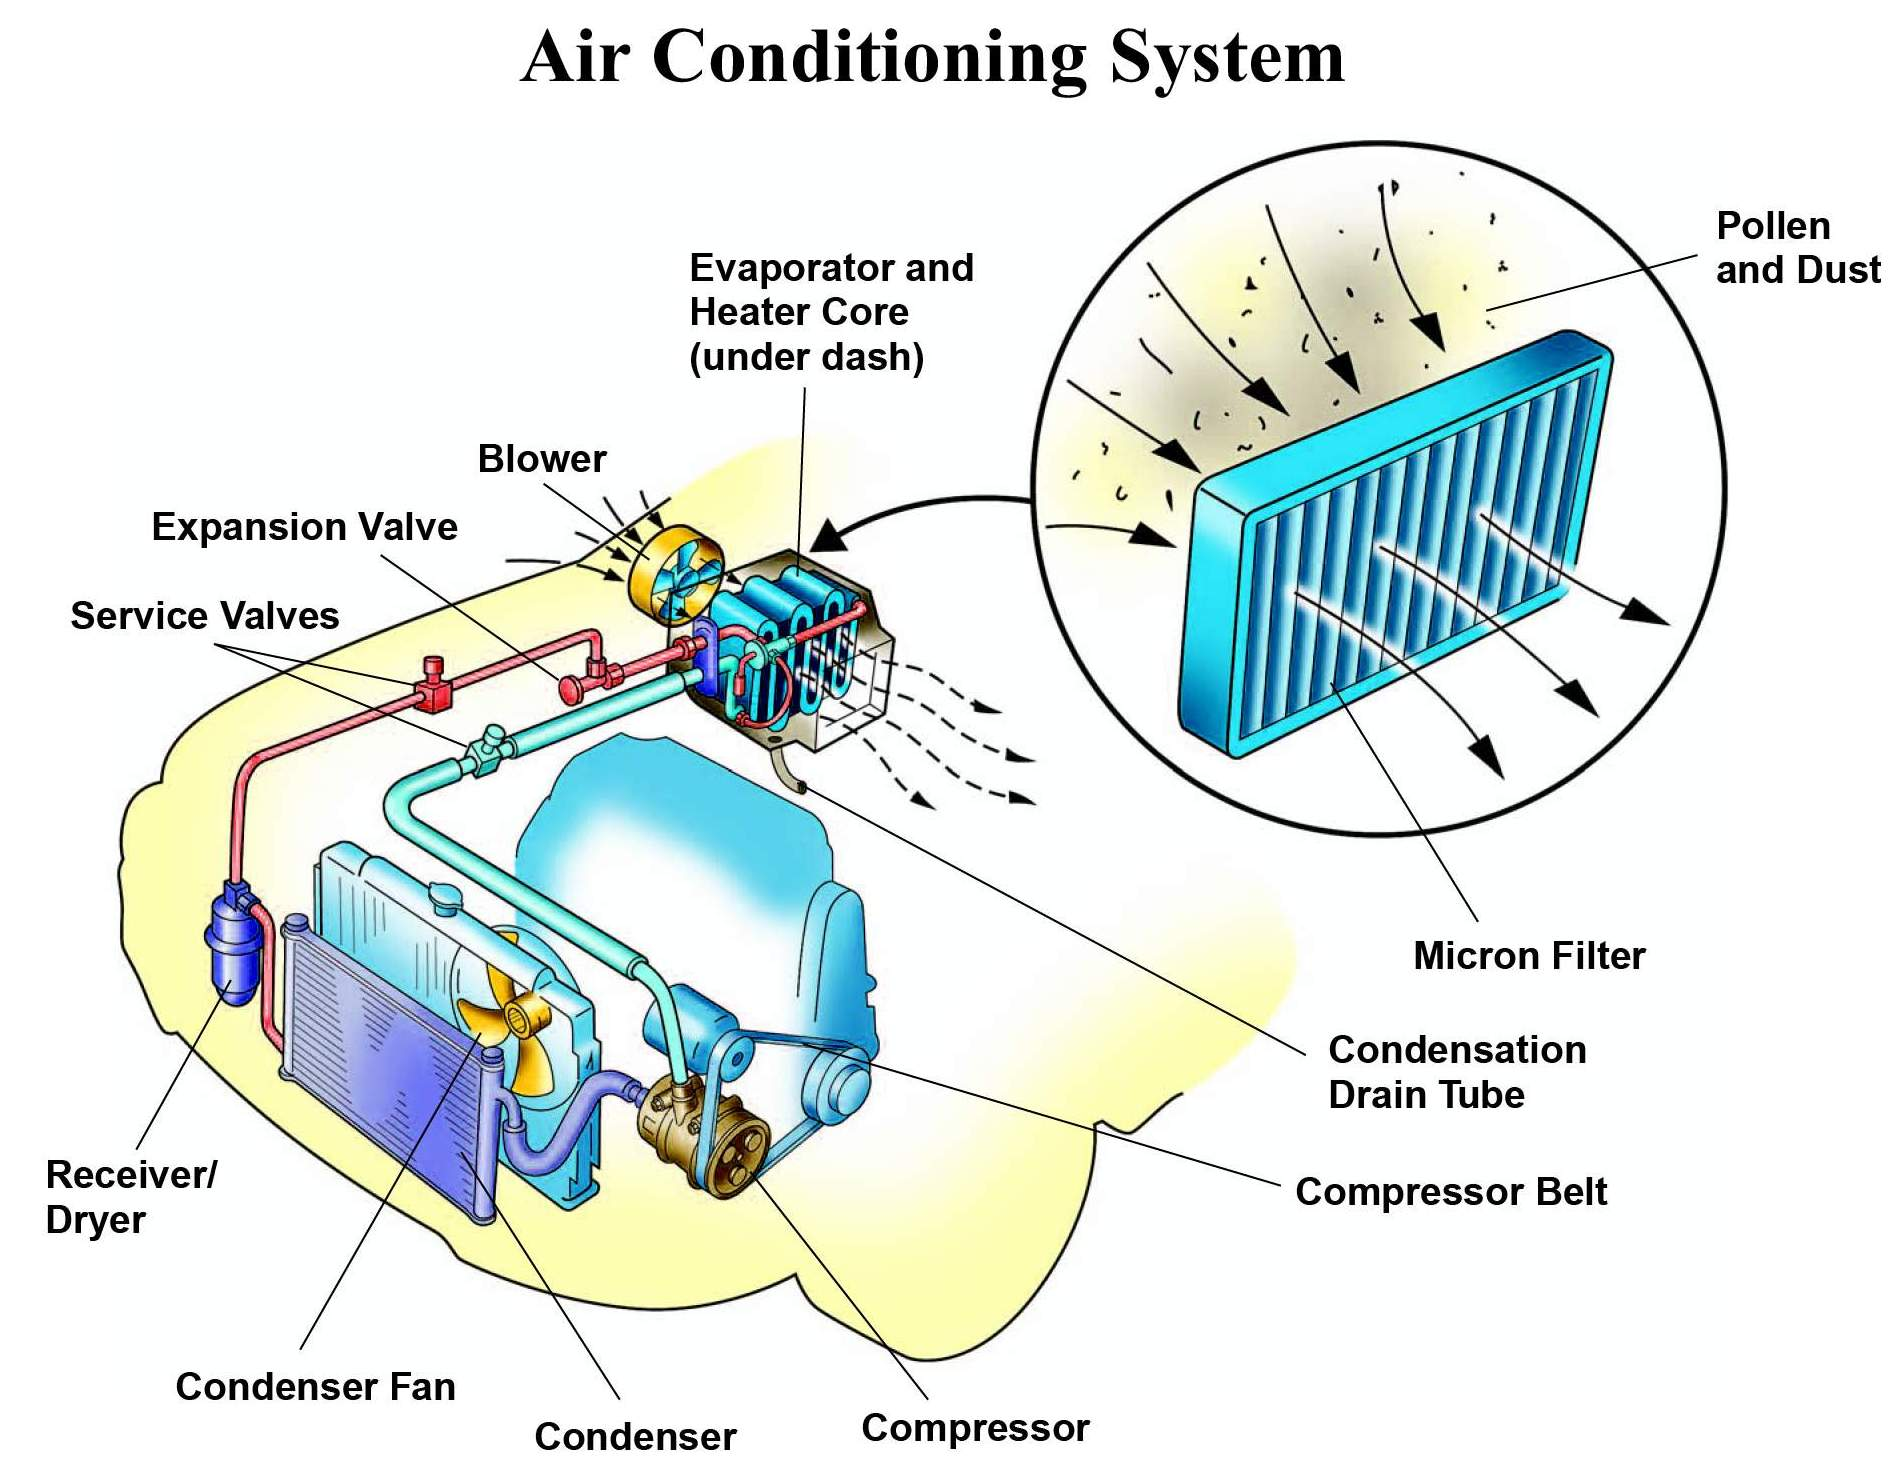 http://en.wikipedia.org/wiki/Air conditioning #16A4B5